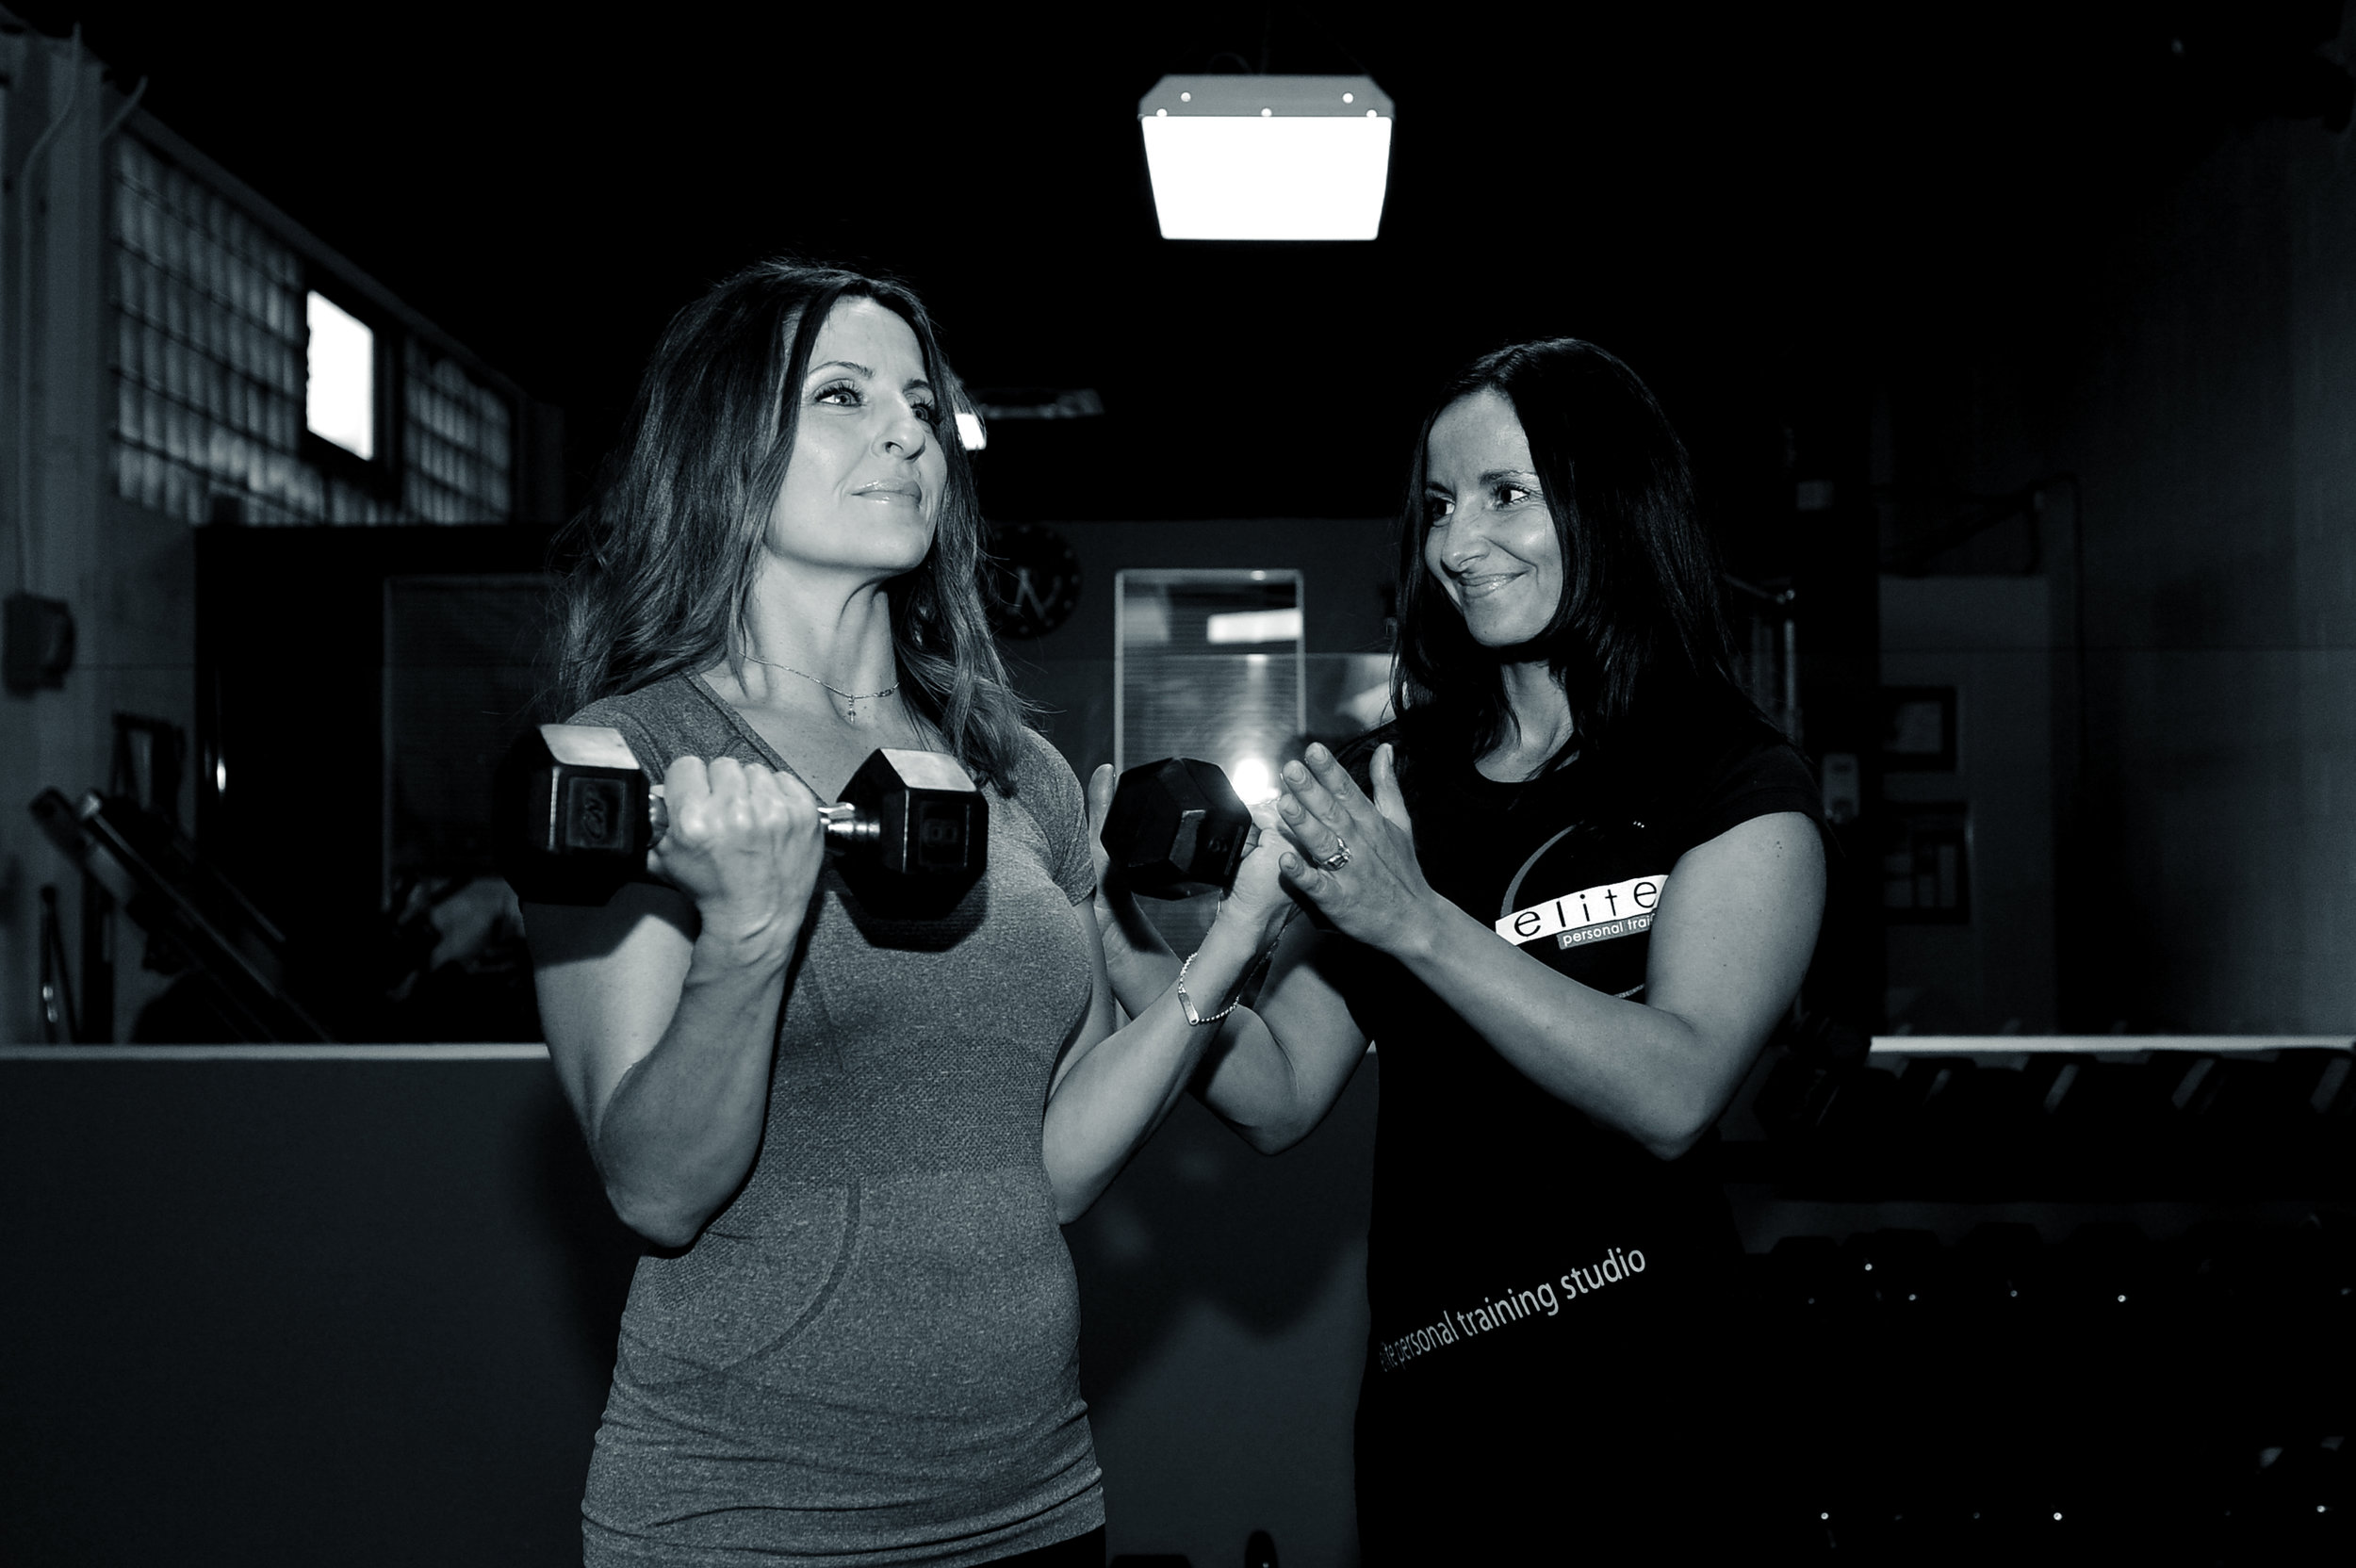 CERTIFICATIONS• Certified Personal Trainer,Canadian Assoc. of FitnessProfessionals• Nutrition & Wellness SpecialistCanadian Assoc. of FitnessProfessionals• BOSU Trainer Twist Conditioning• CPR• AED• FIRST AIDSPECIALTIES• Strength & Conditioning• Nutrition• Pre-Natal / Post-Natal Fitness• Pre-Natal / Post-Natal Nutrition• Weight Loss & WeightManagement• Sport Specific• Core Training -